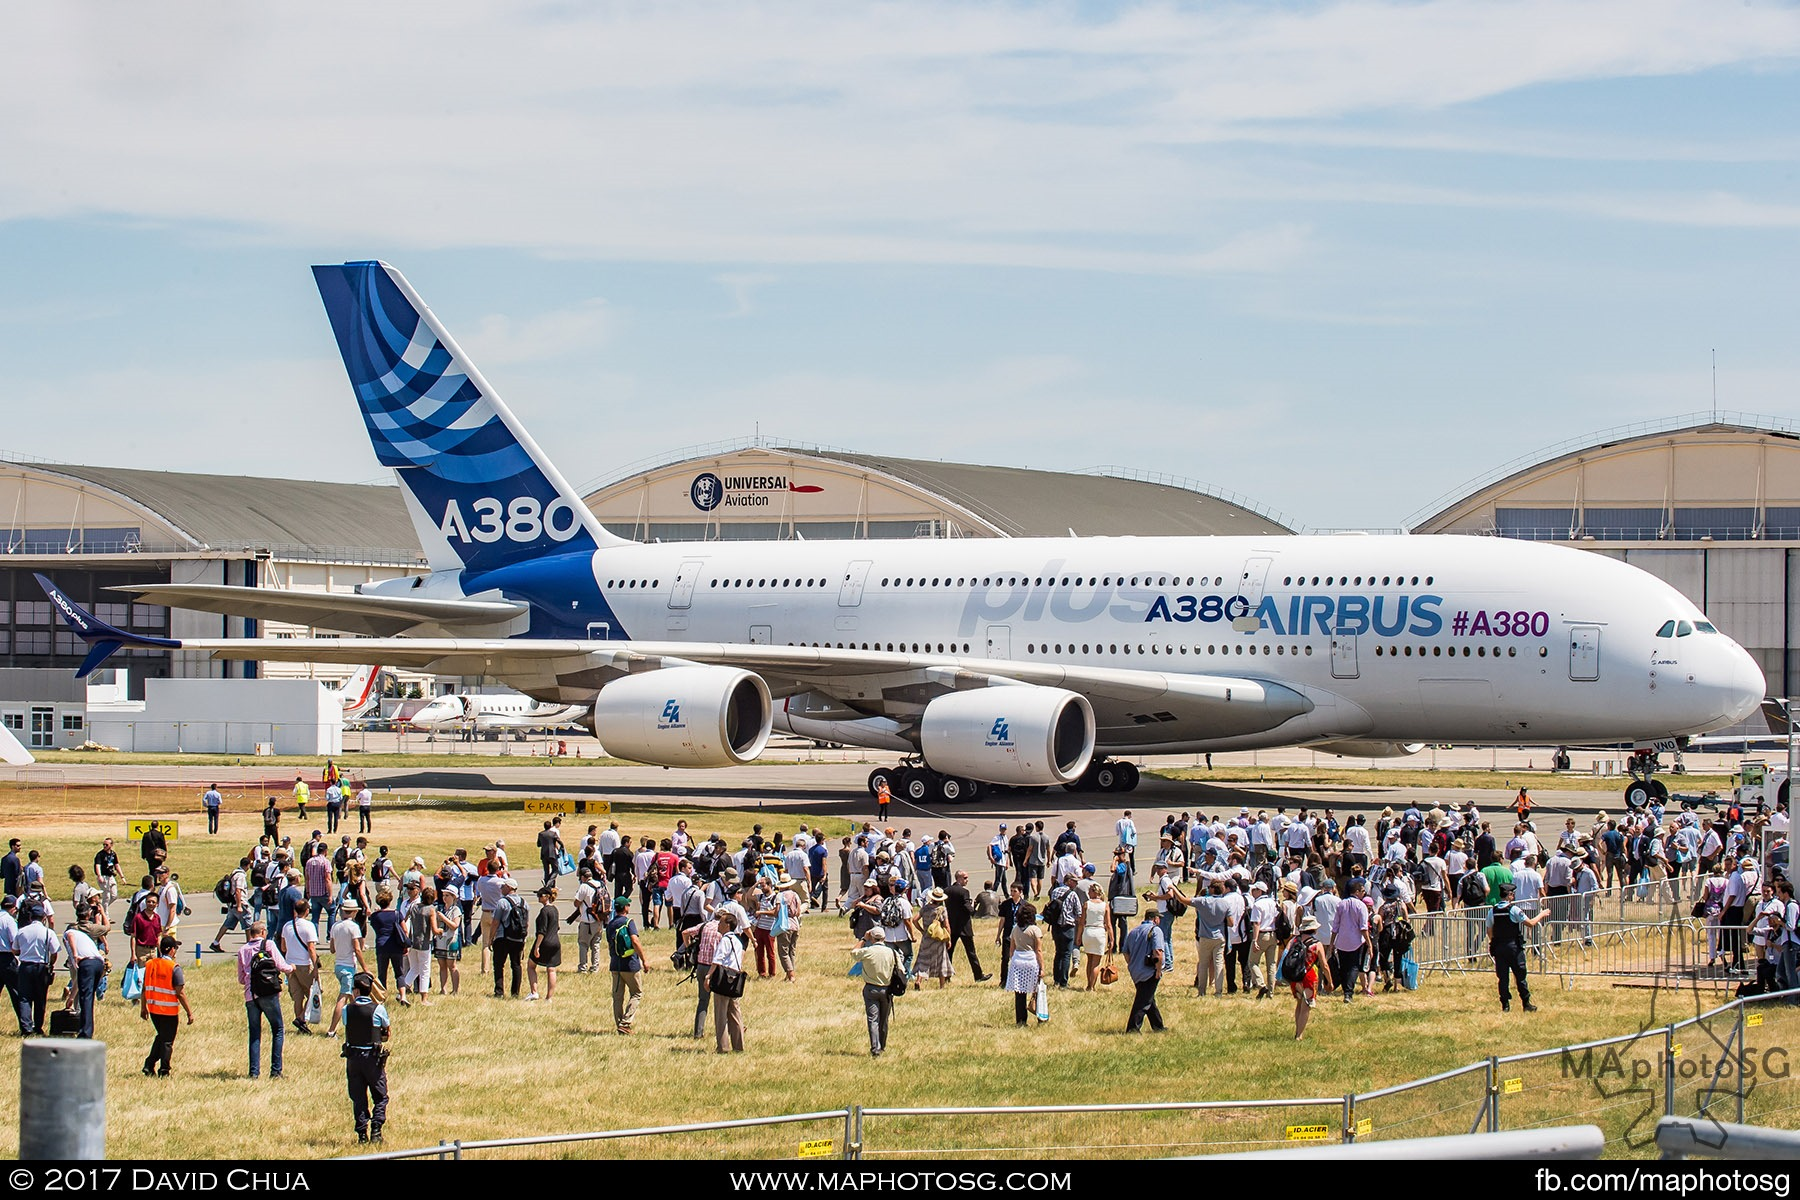 1. Airbus unveiled a new version of its super jumbo A380 with a host of upgrades. The A380plus is an efficient way to offer even better economics and improved operational performance at the same time. Here, the crowd gathers as the A380plus is being towed from the Static Display Area.